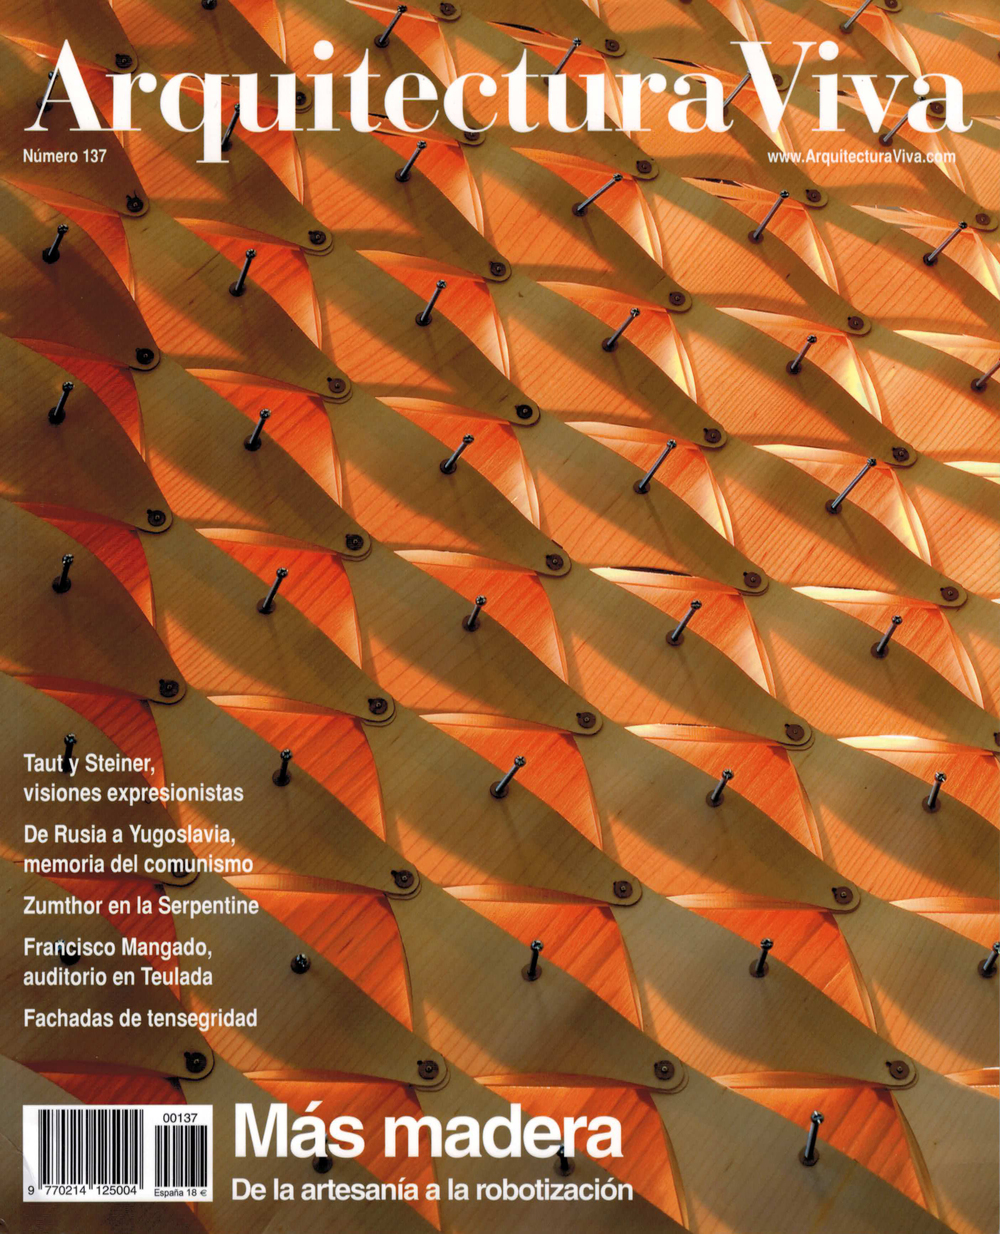 ARQUITECTURA VIVA  Fall 2011, No. 137